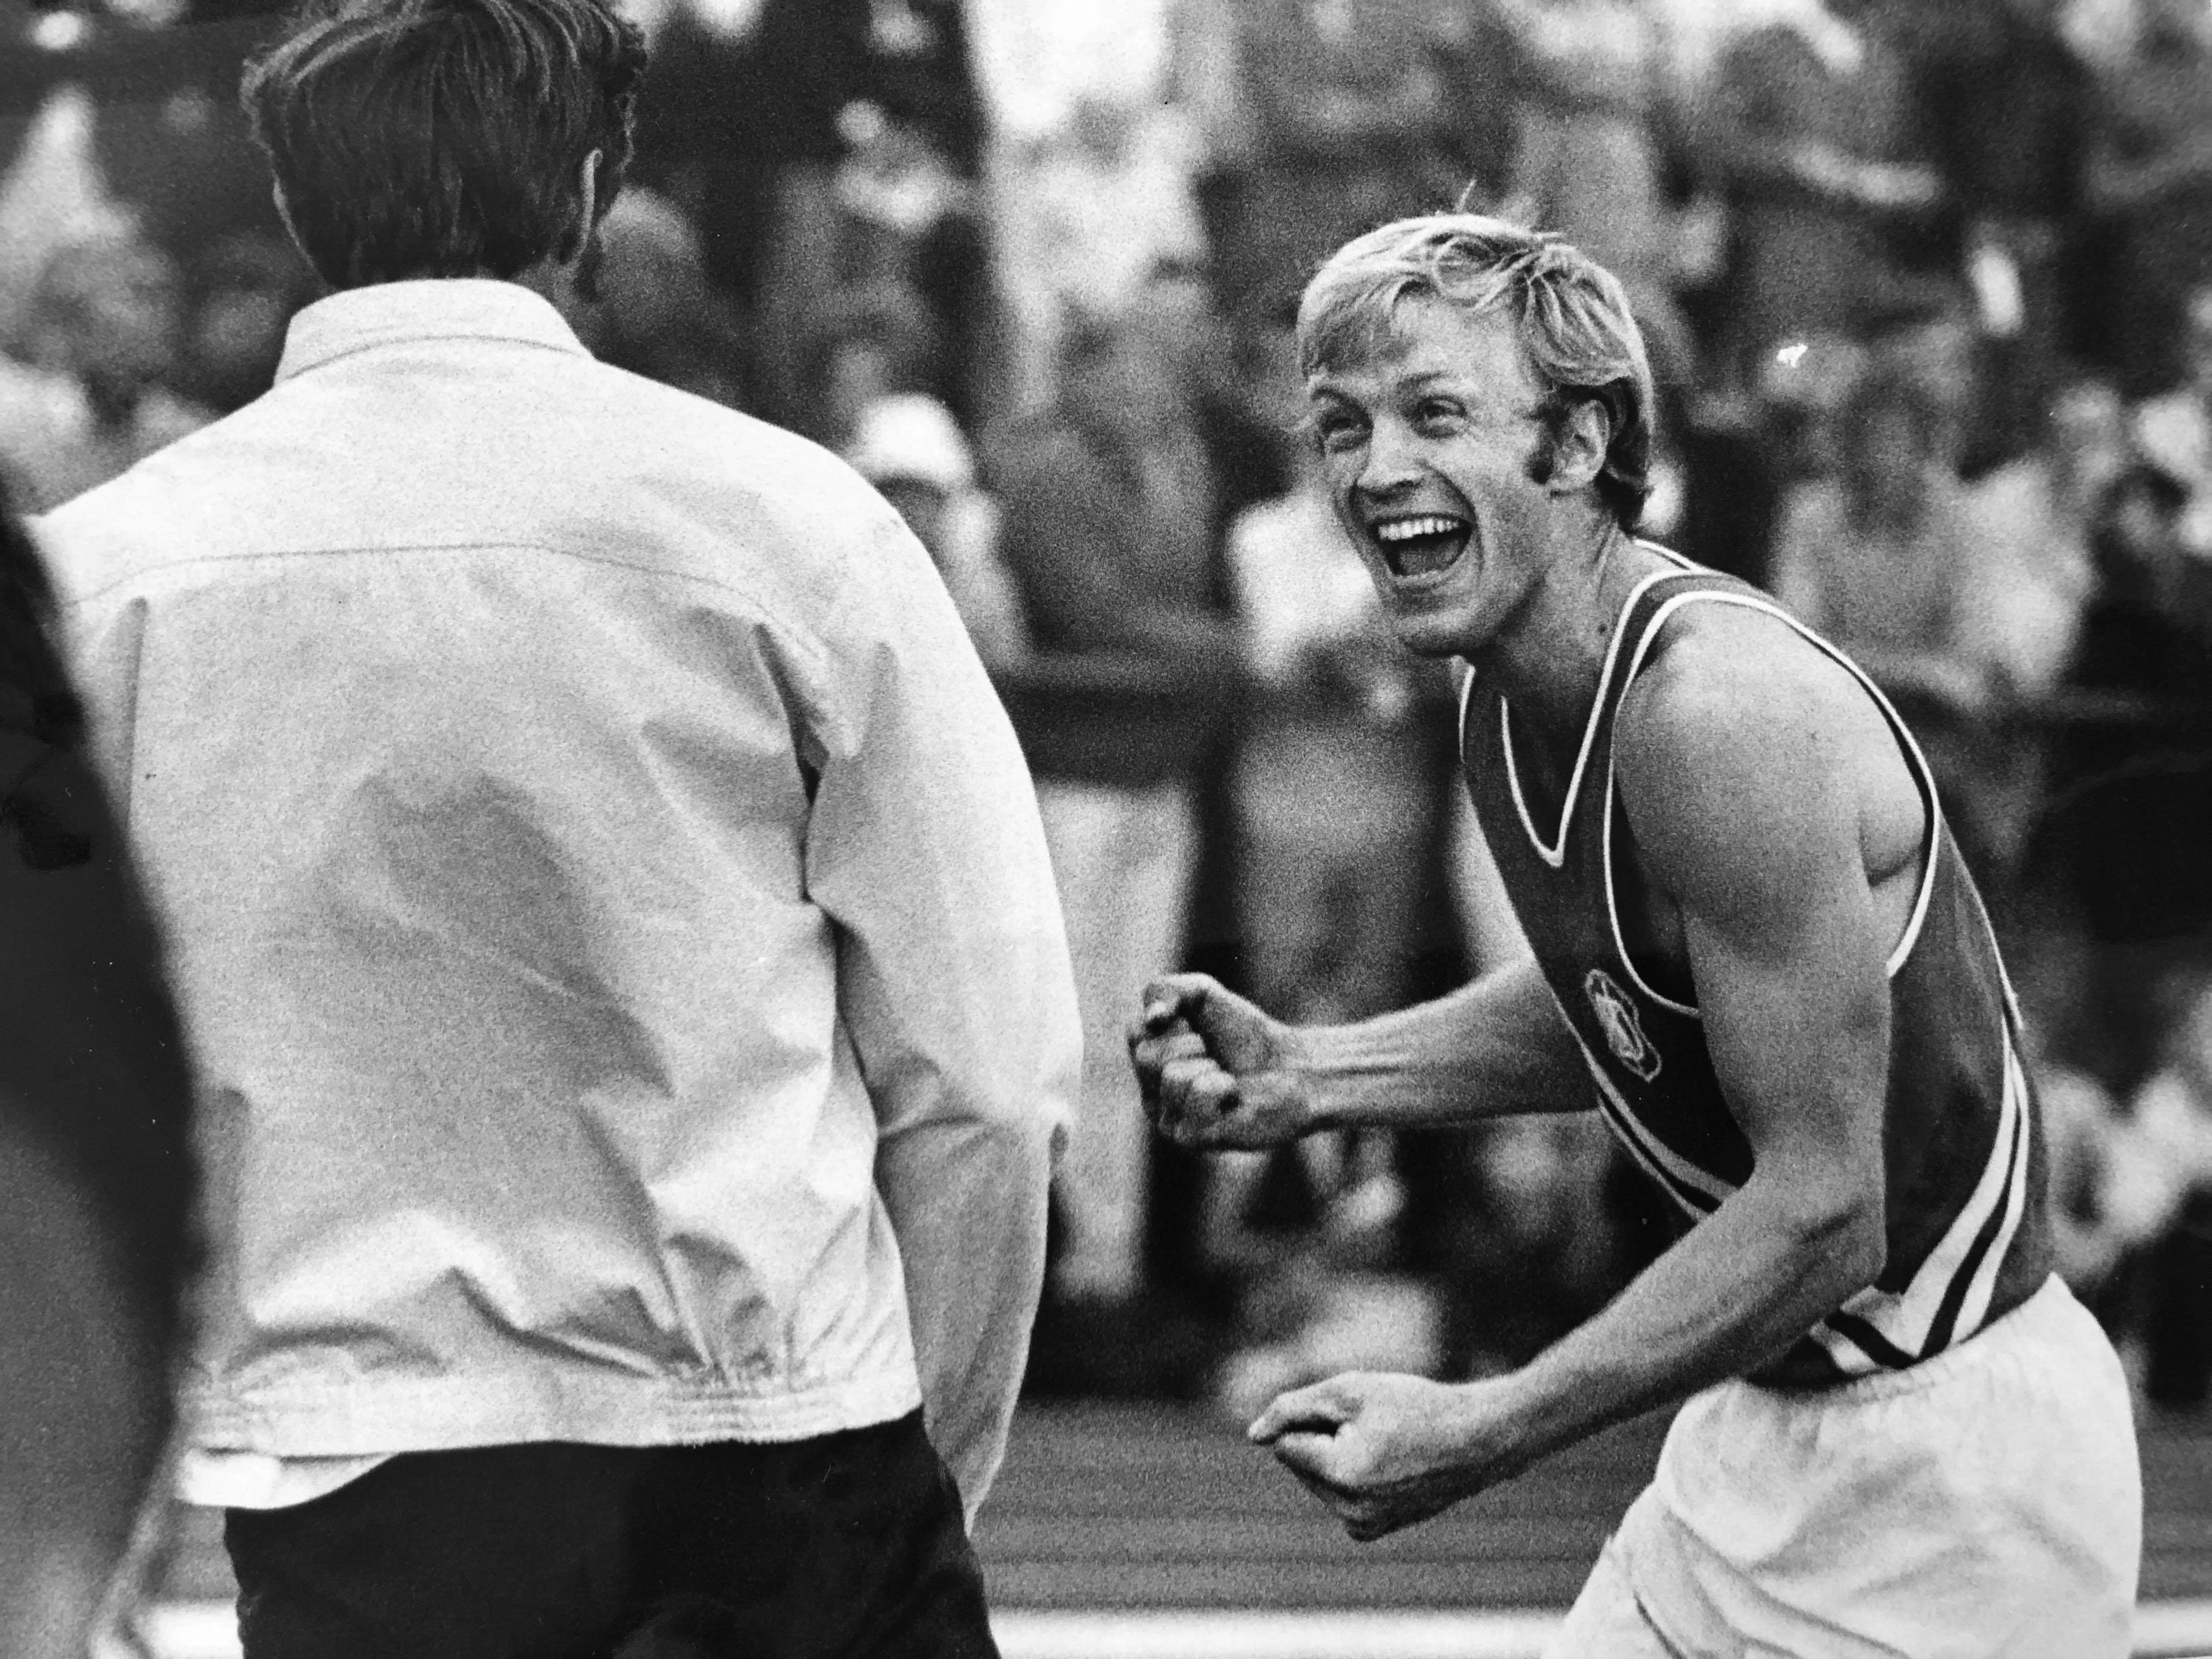 """Hans Lagerqvist displays his love for the pole vault with classic """"Hasse"""" enthusiasm."""